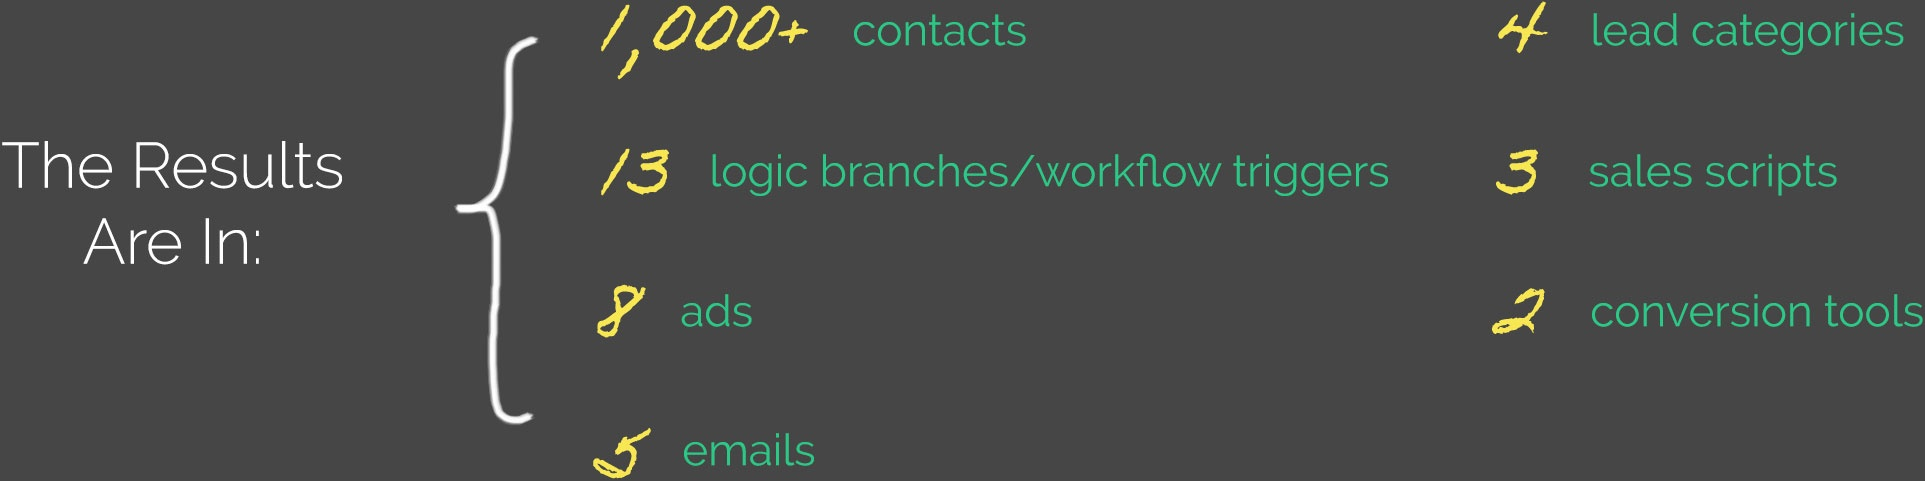 The Results Are In: 1,000+ contacts, 13 logic branches/workflow triggers, 8 ads, 5 emails, 4 lead categories, 3 sales scripts, 2 conversion tools.